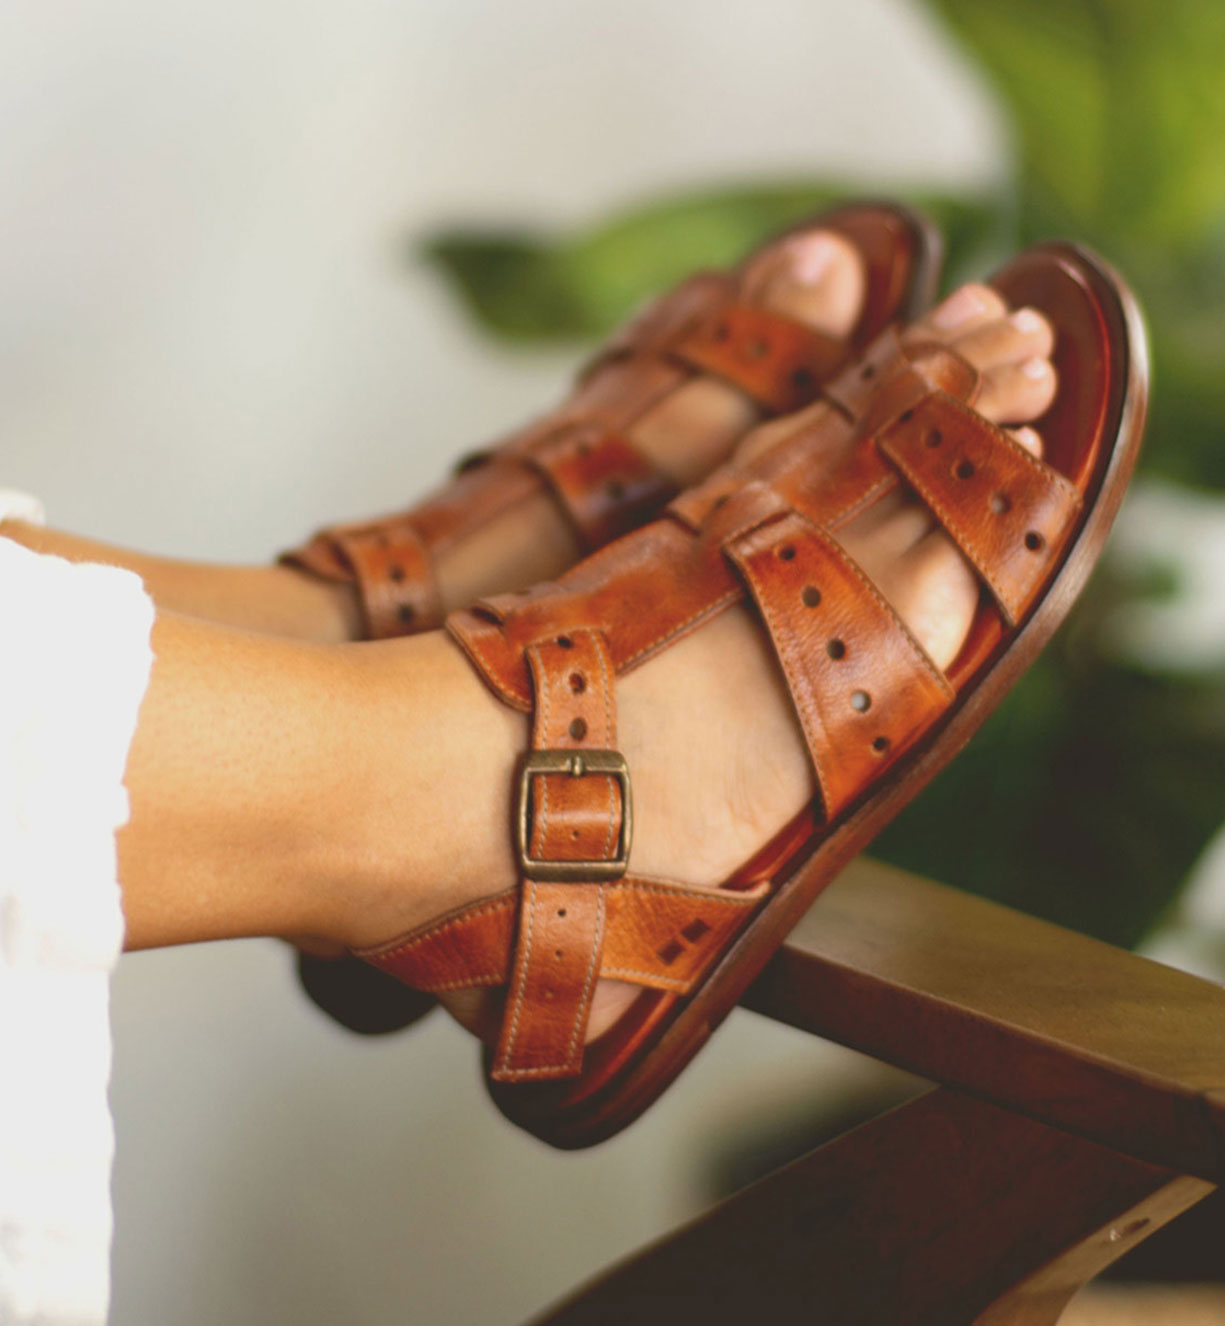 Woman's foot wearing strappy leather sandals Sue